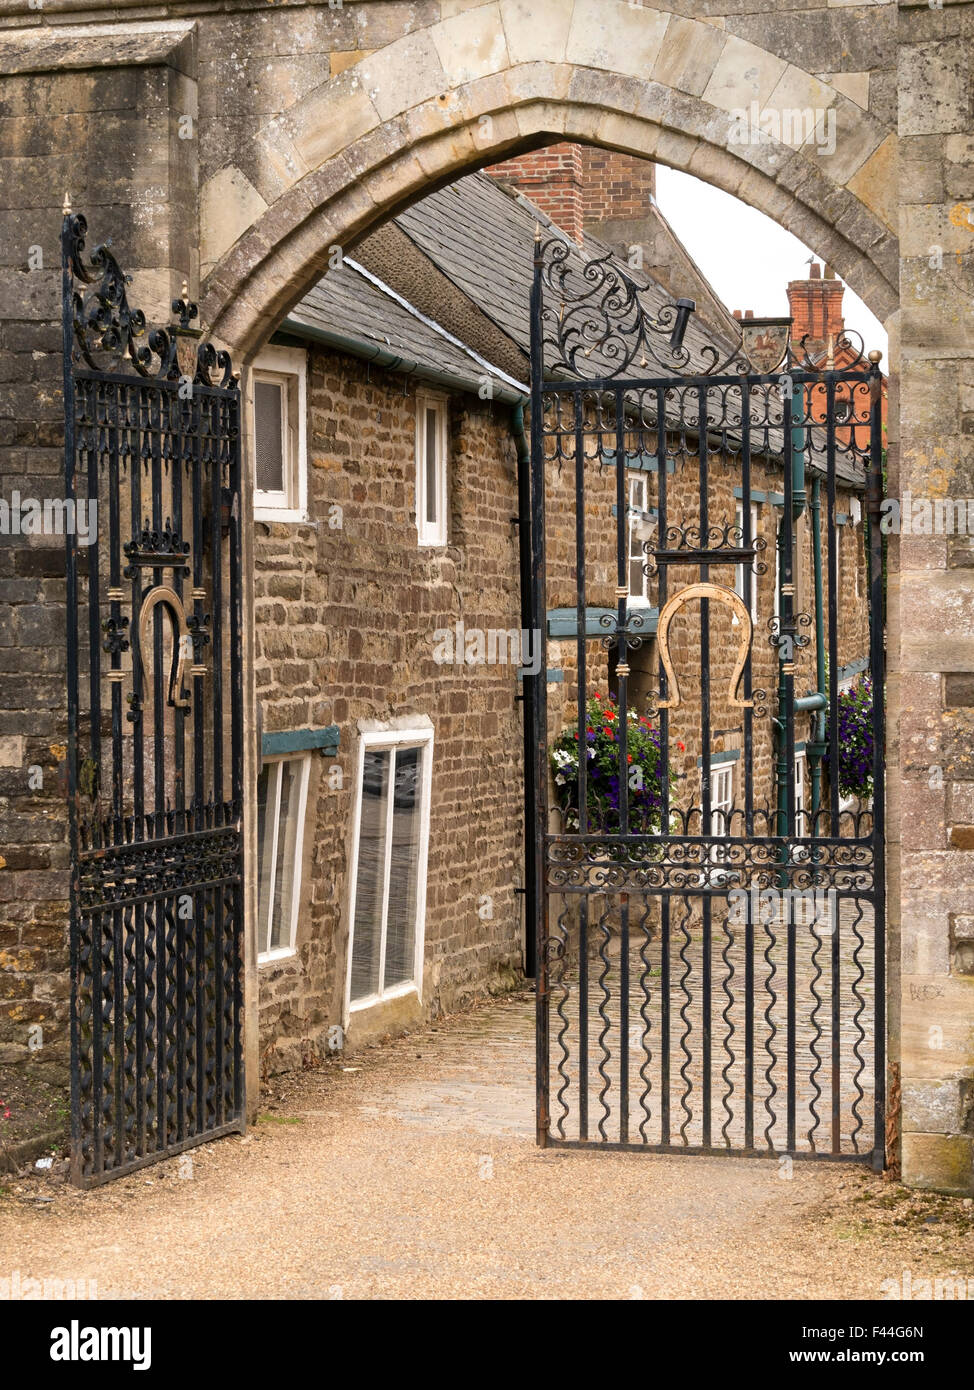 Stone arch and wrought iron gates at the entrance to